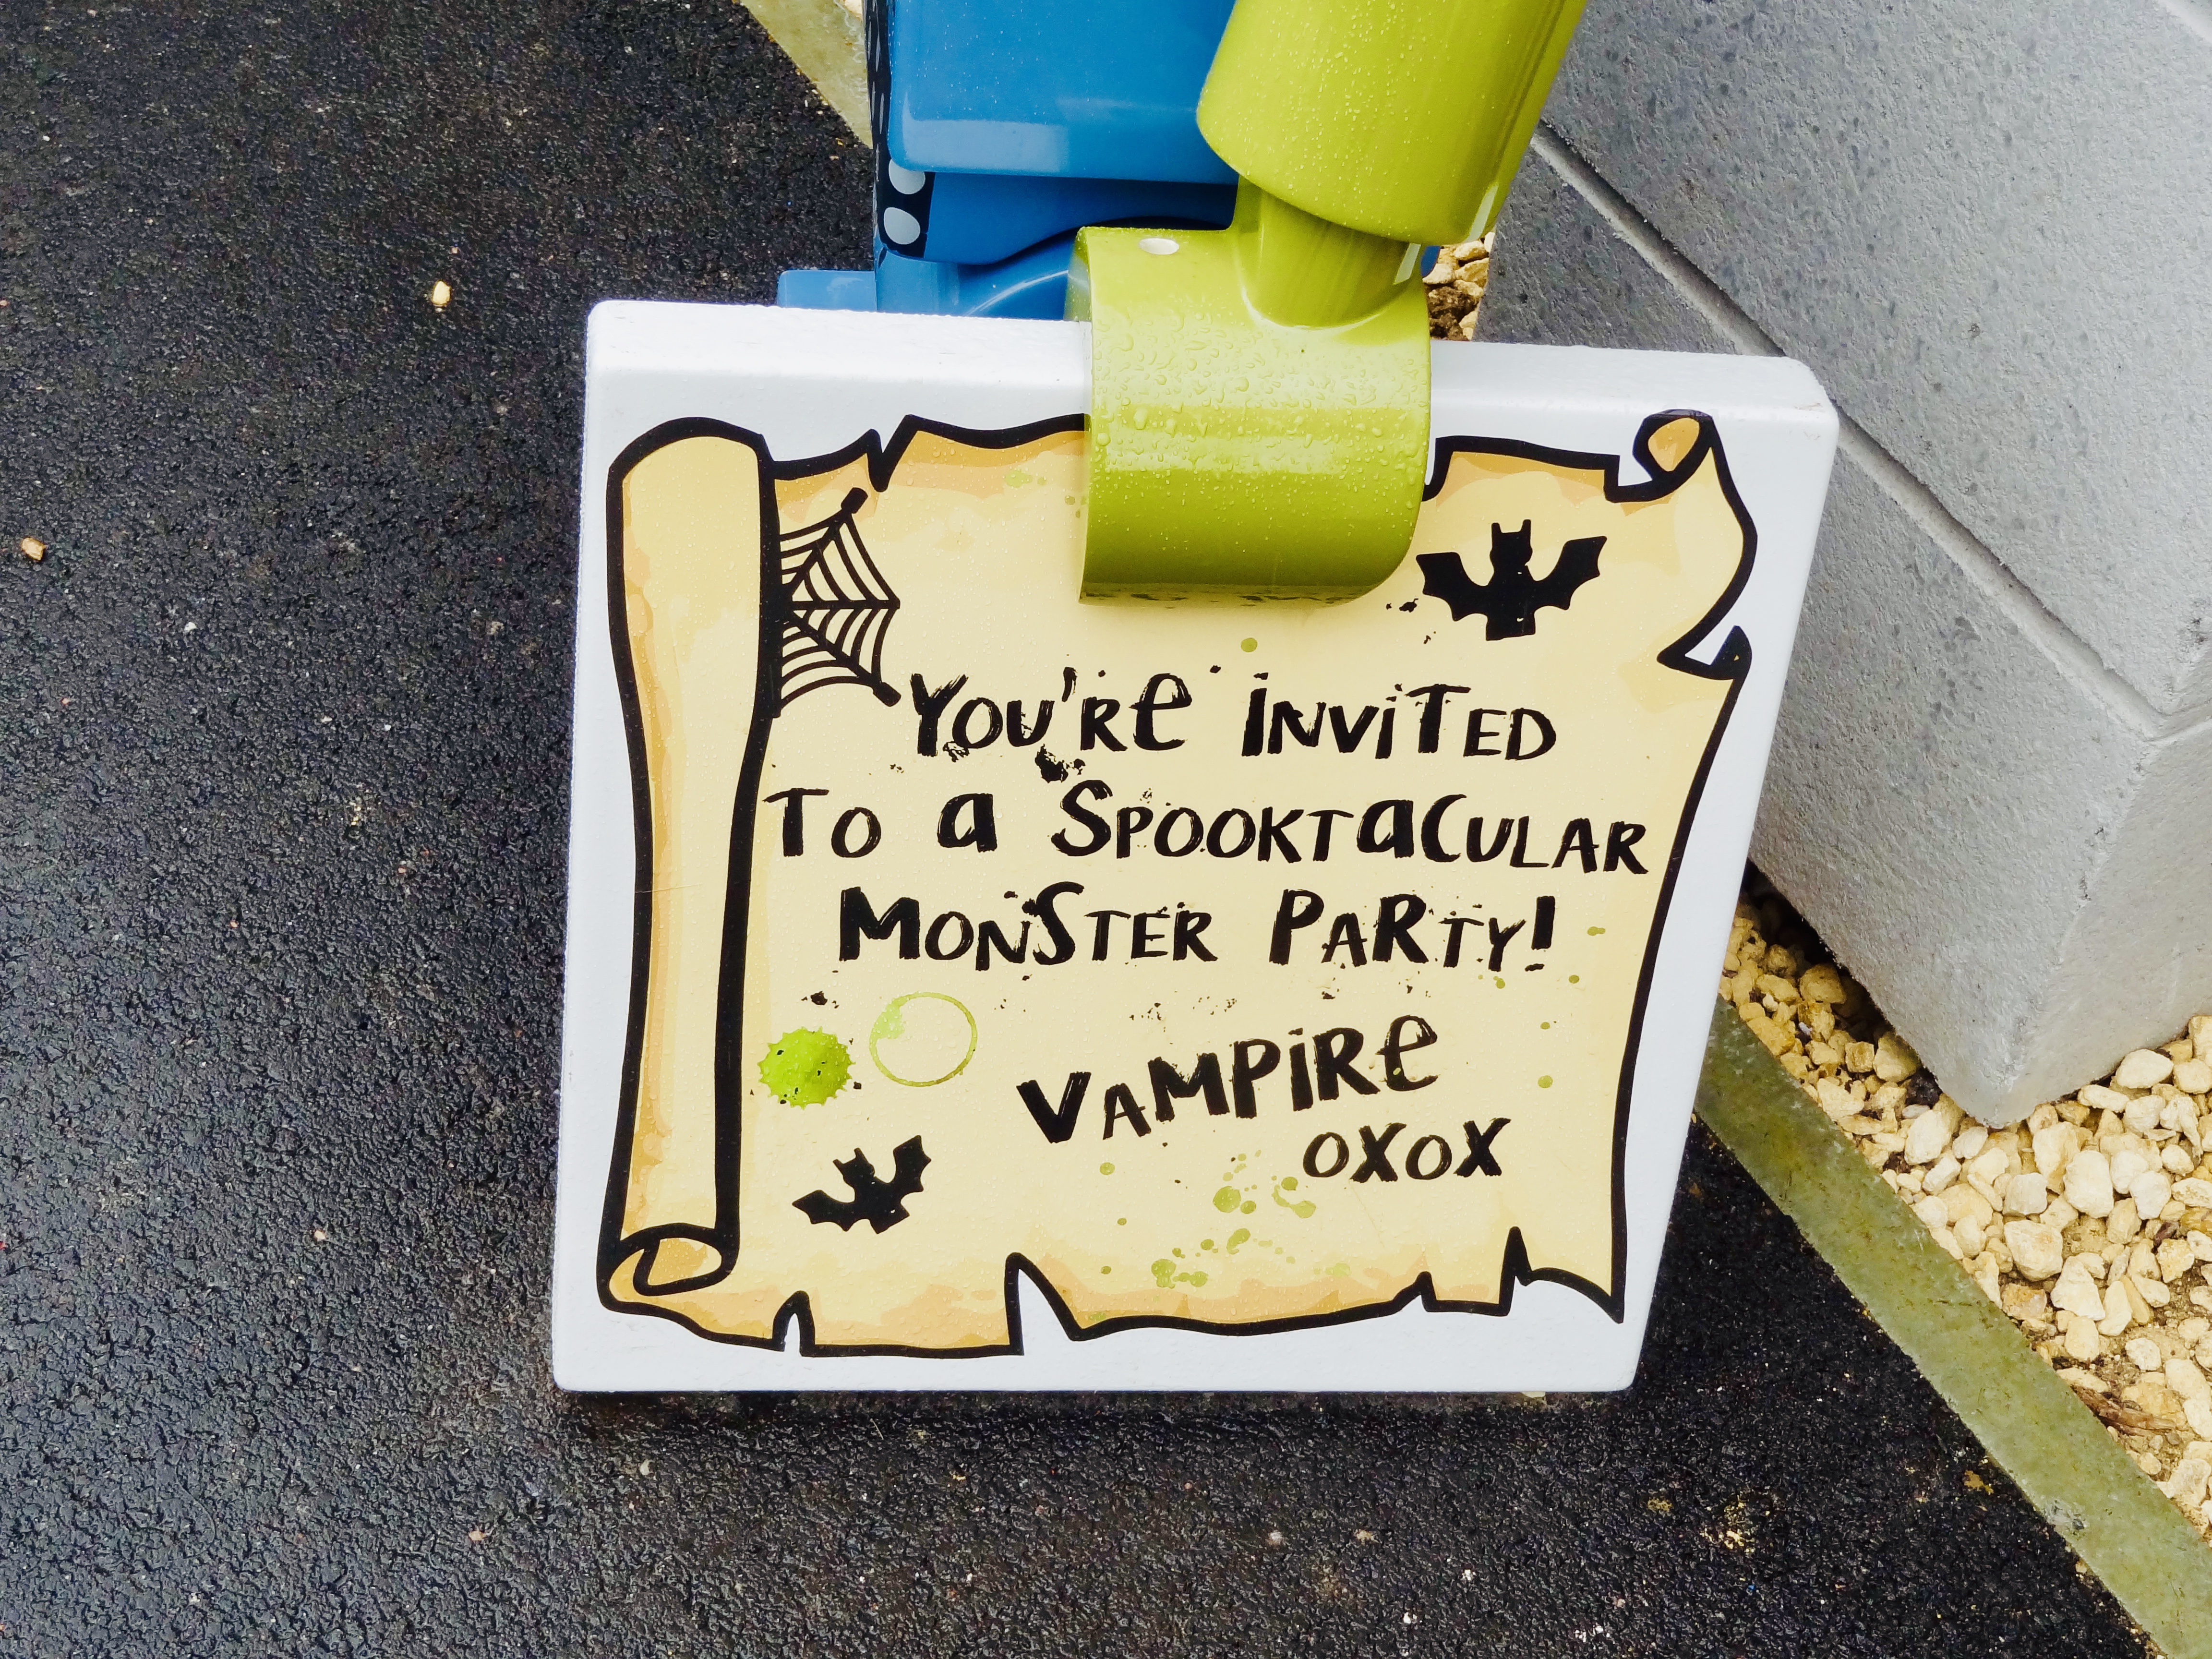 you're invited to a spooktacular monster party vampire xoxo letter